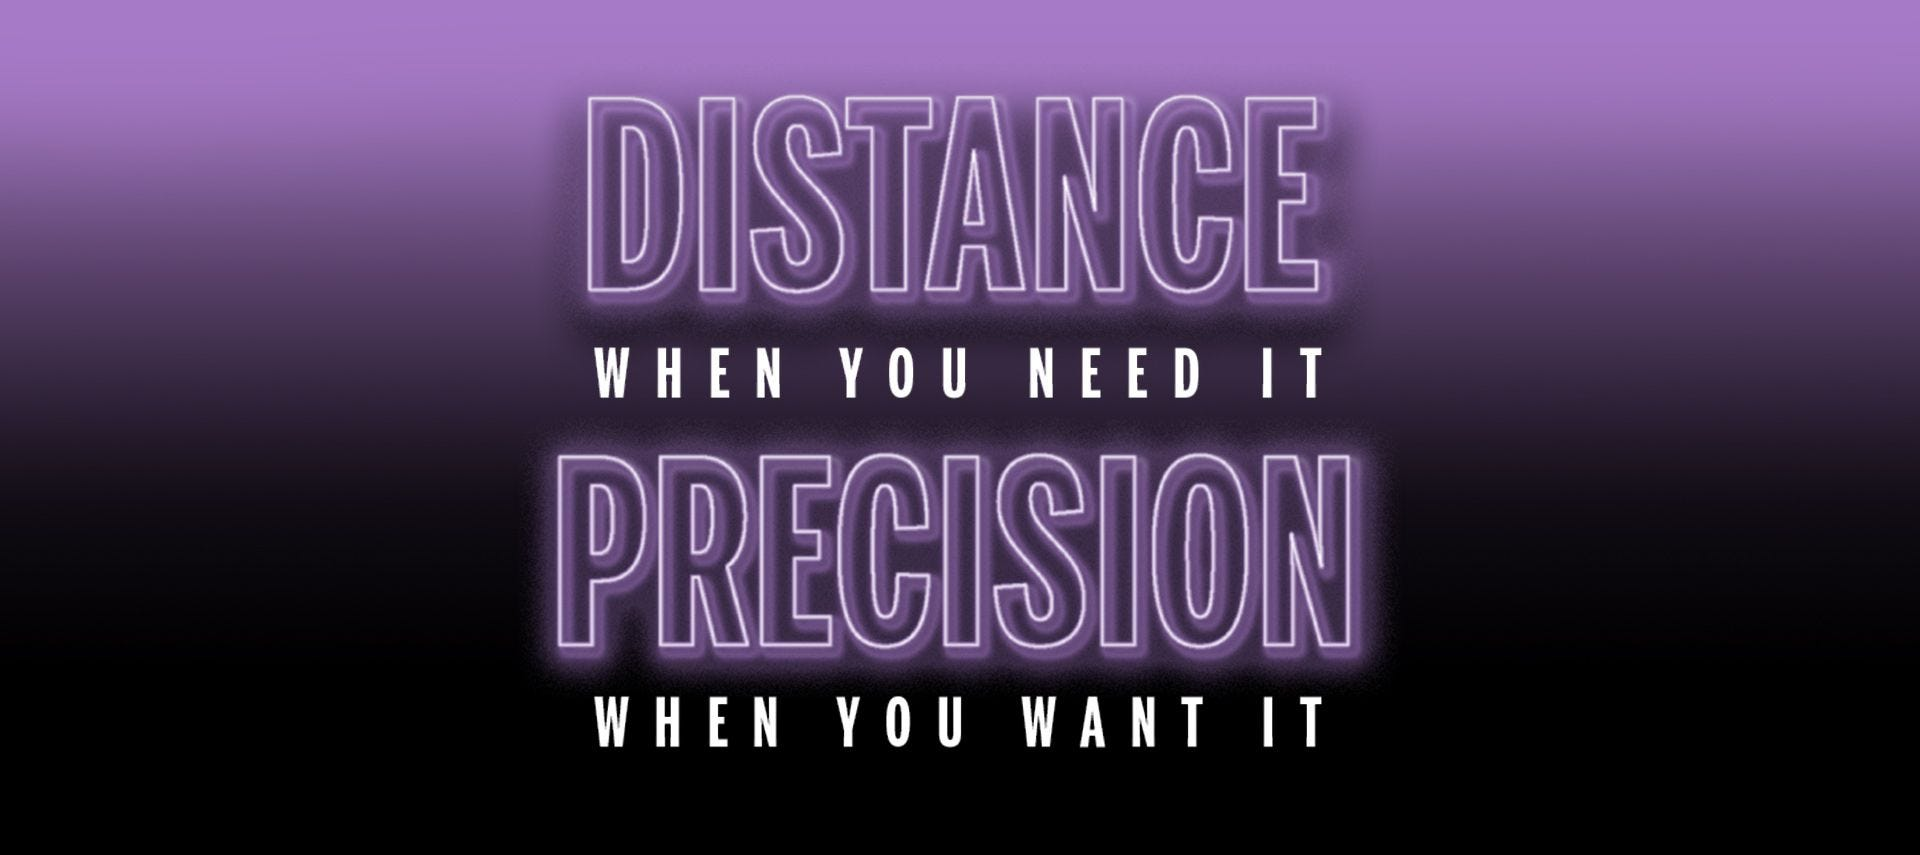 Distance and Precision graphic on purple background